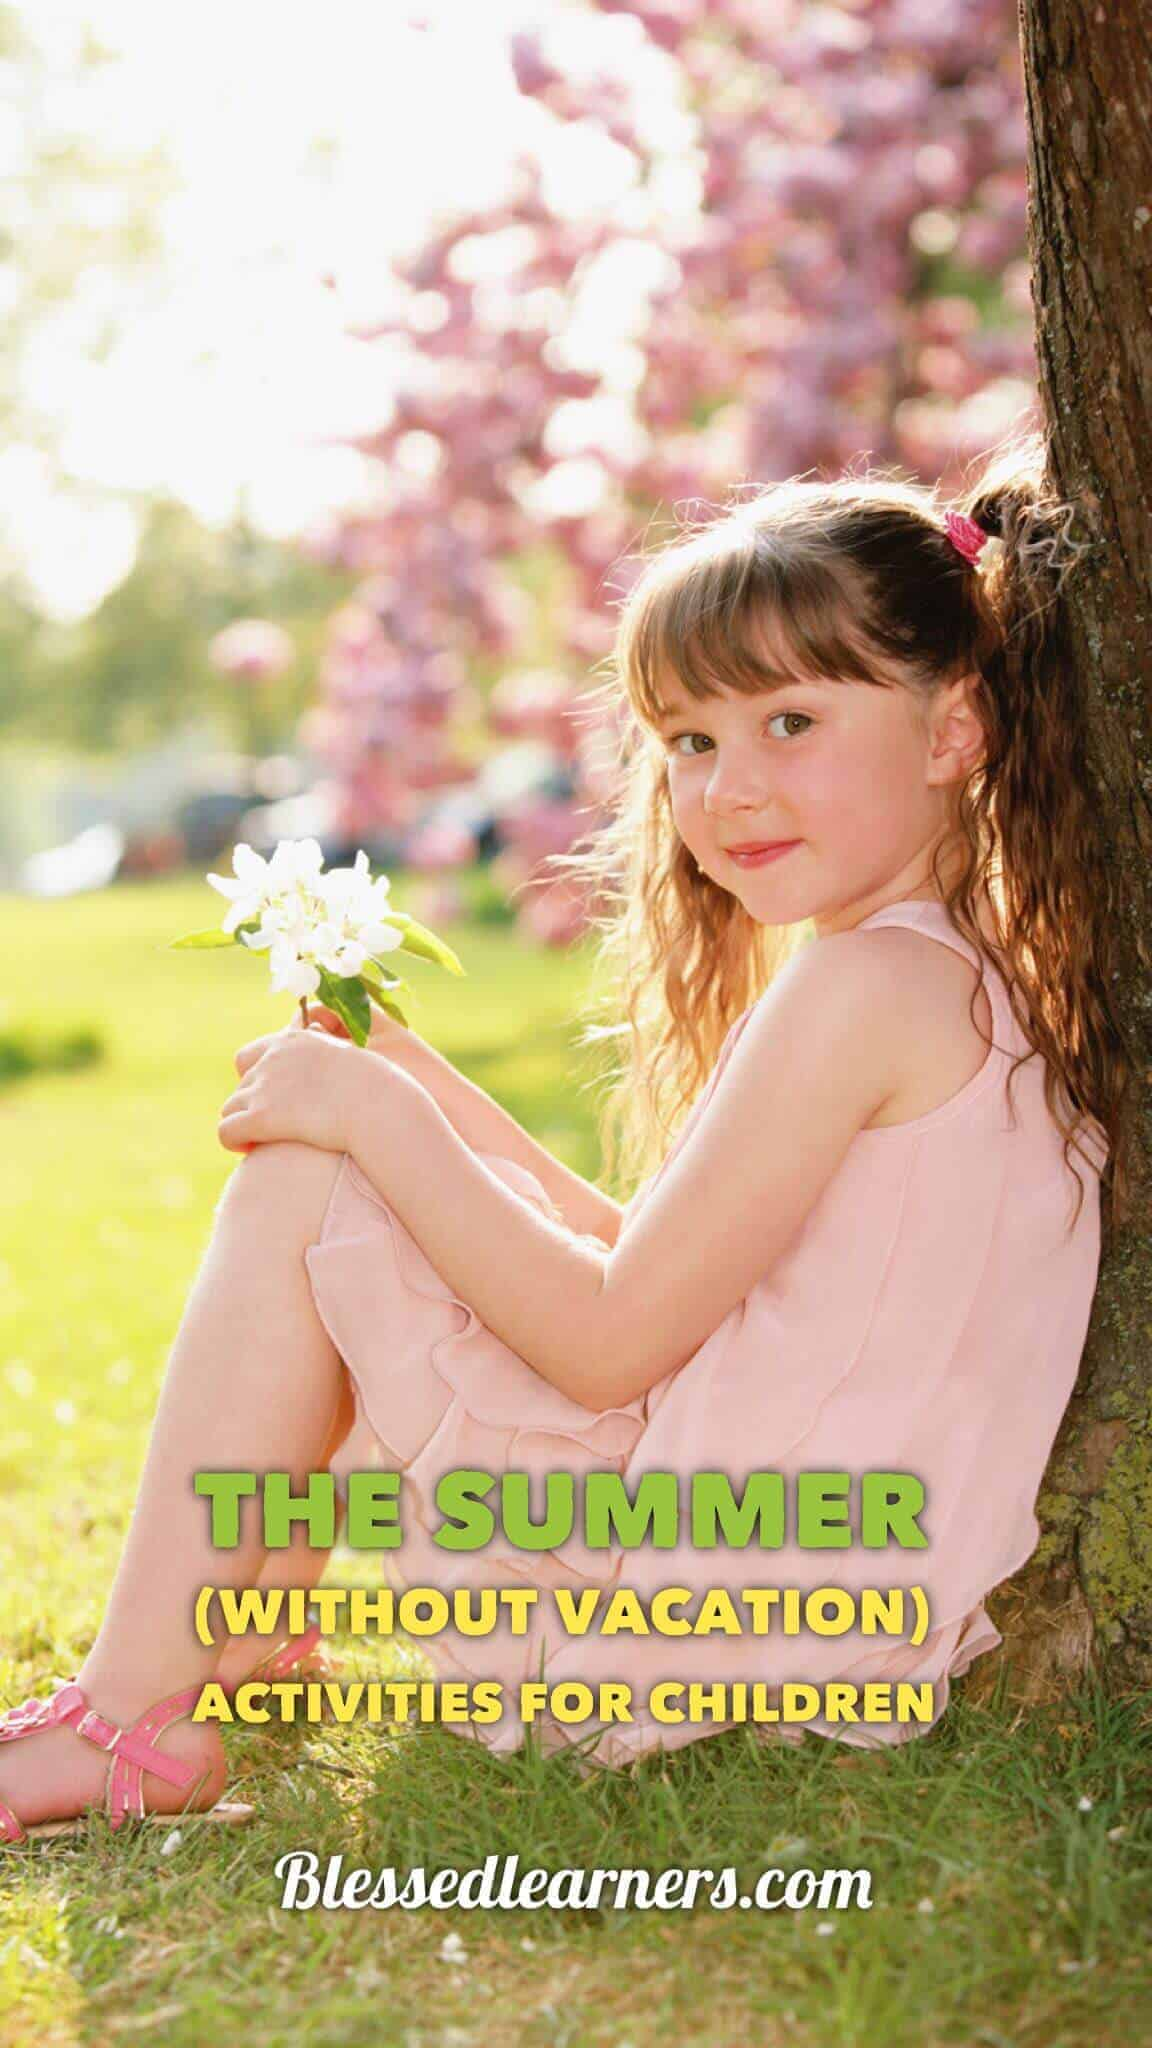 The Summer without vacation activities for children